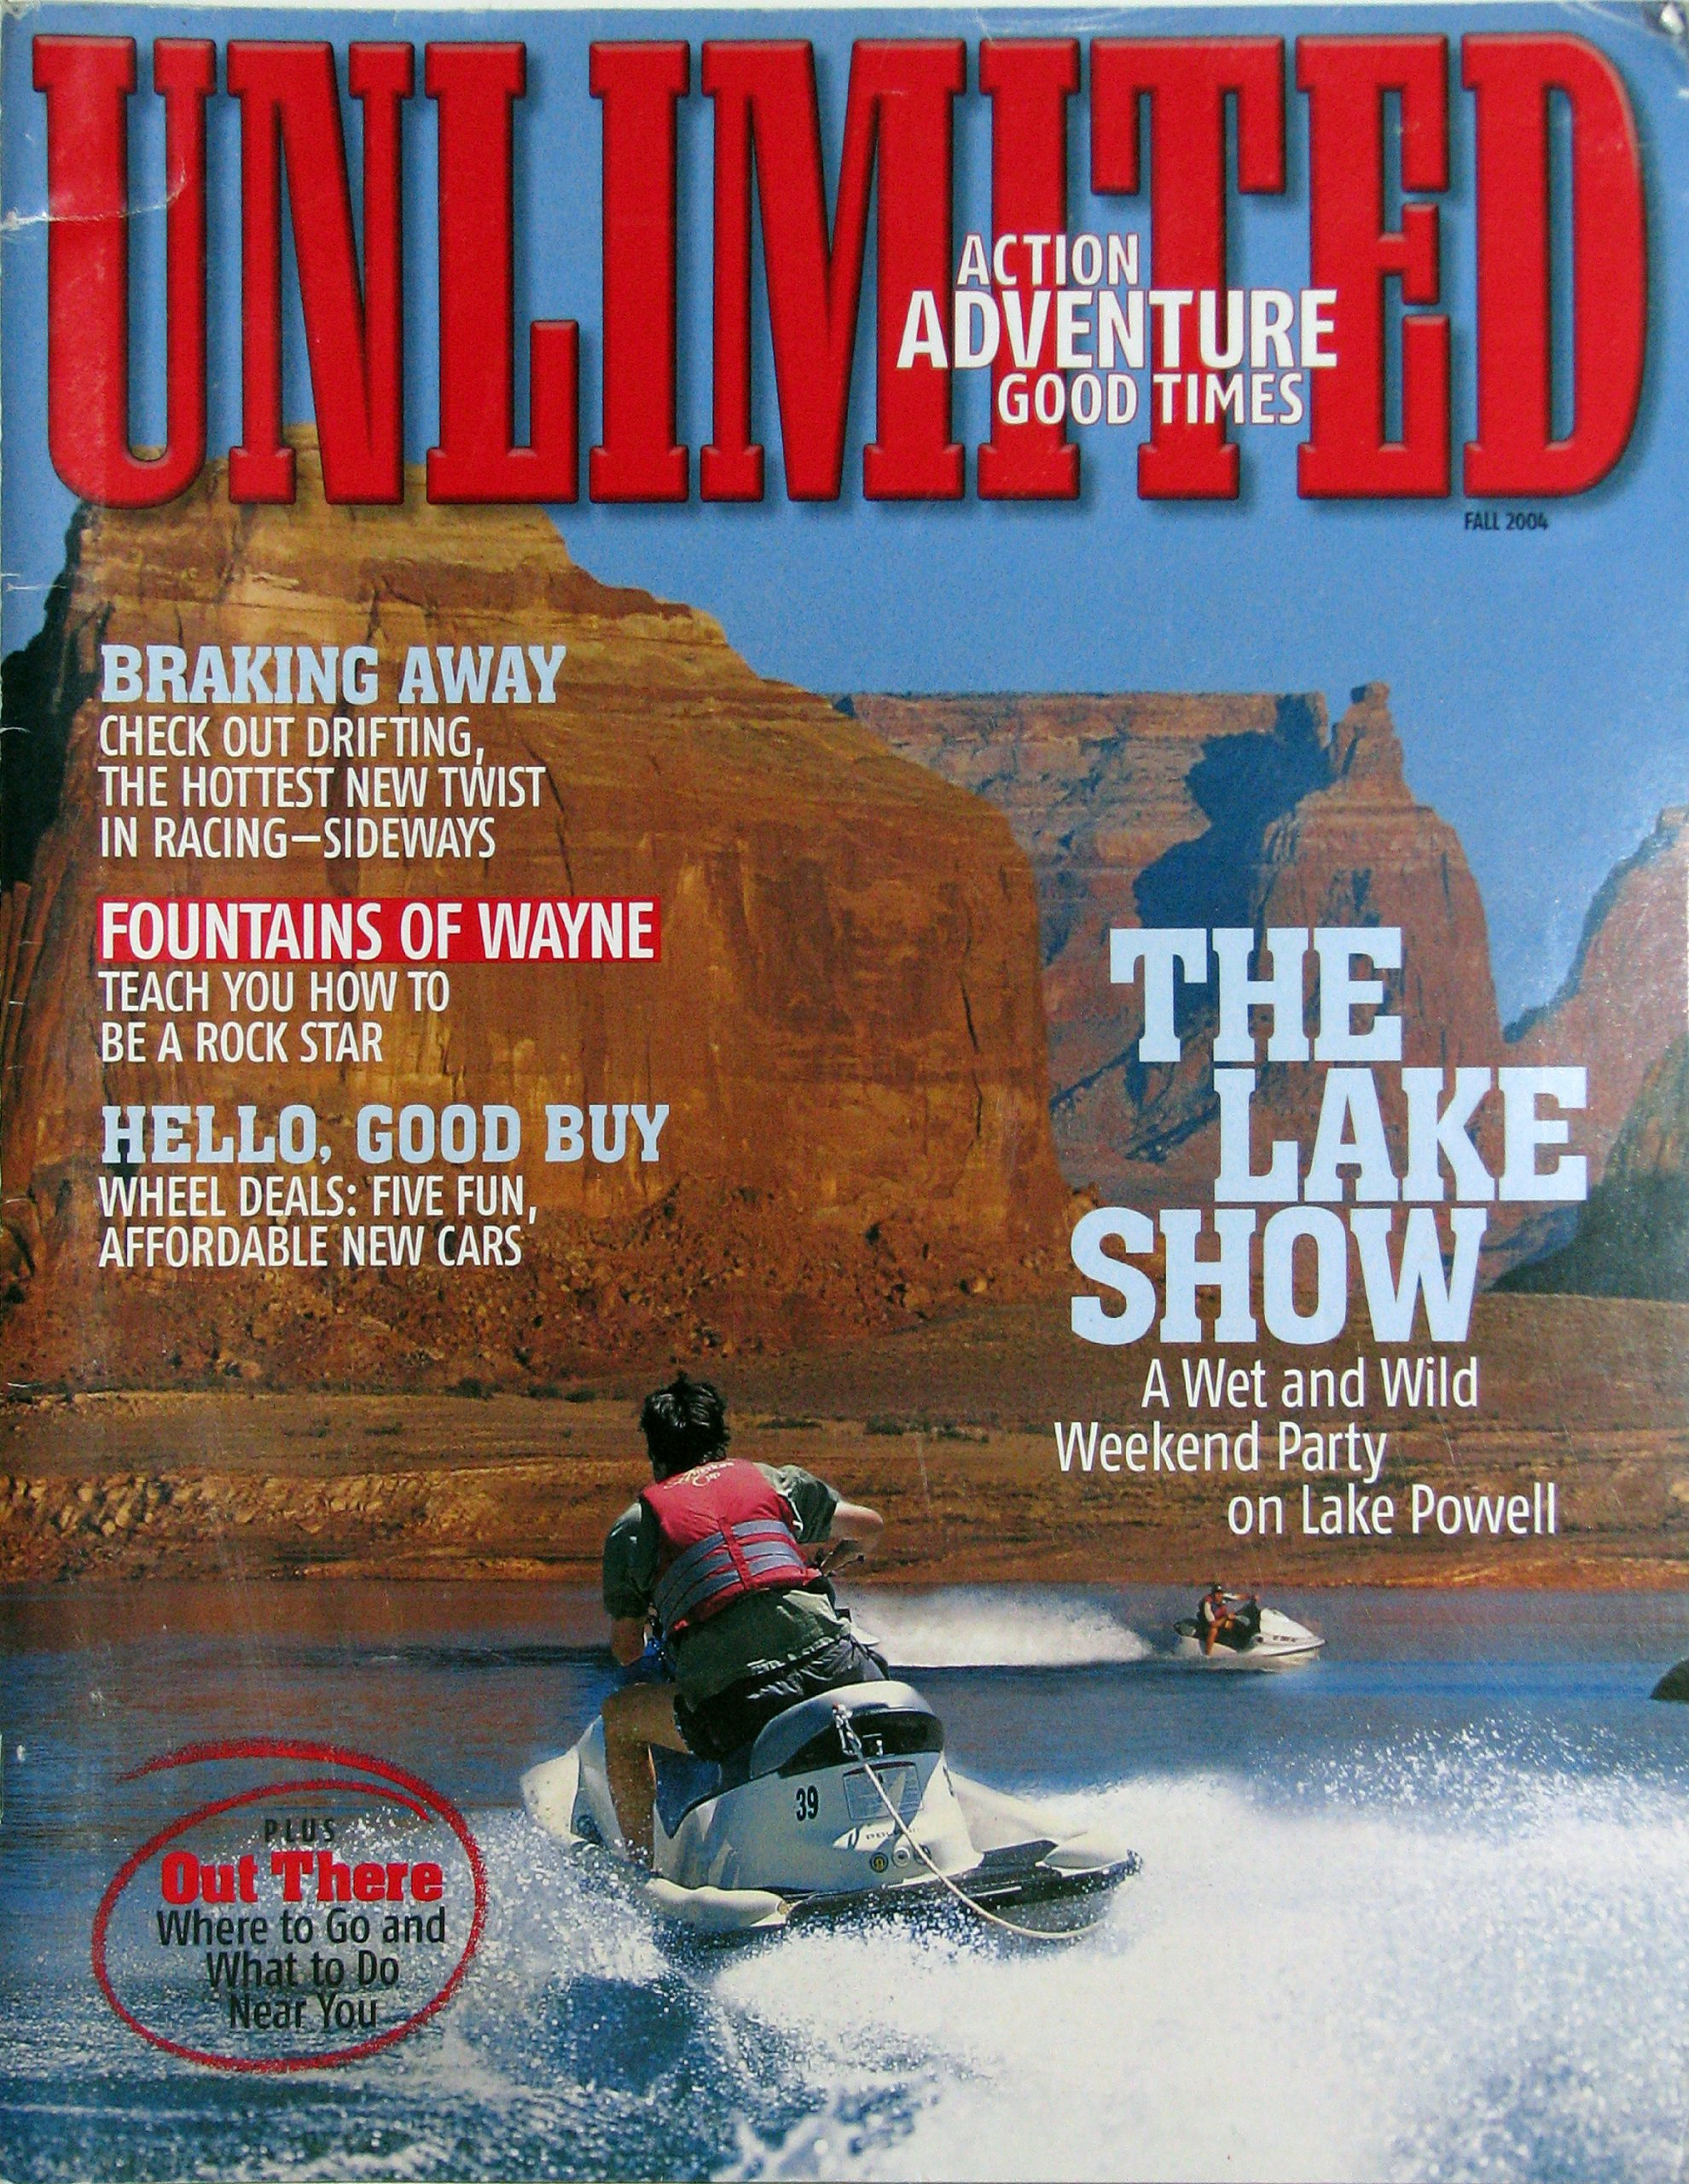 UNLIMITED Action, Adventure, Good Times Magazine - Fall 2004